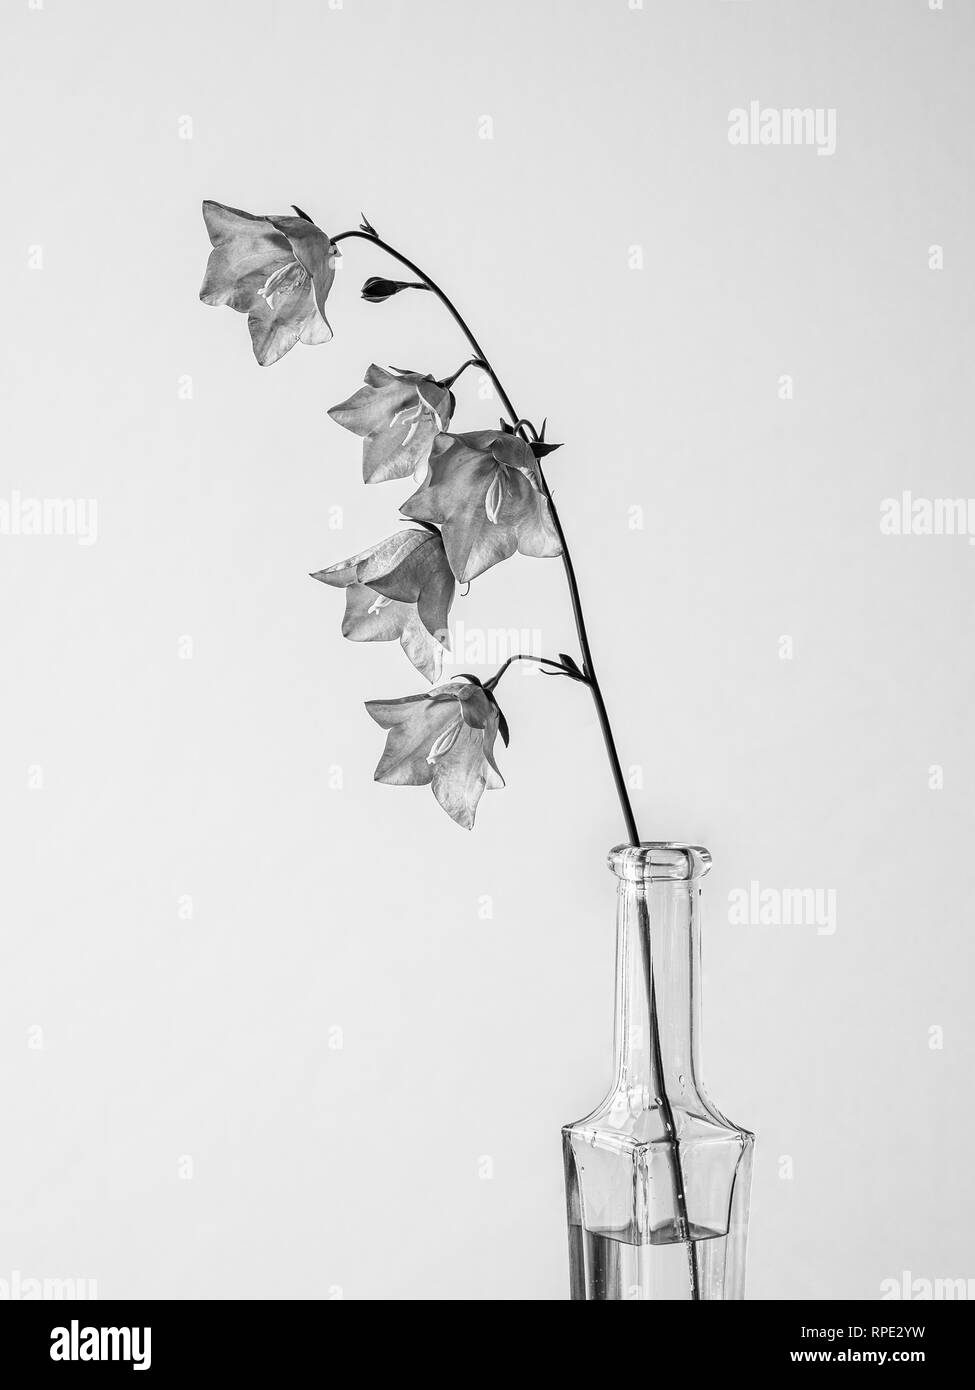 Campanula still life single flower in bottle - Stock Image